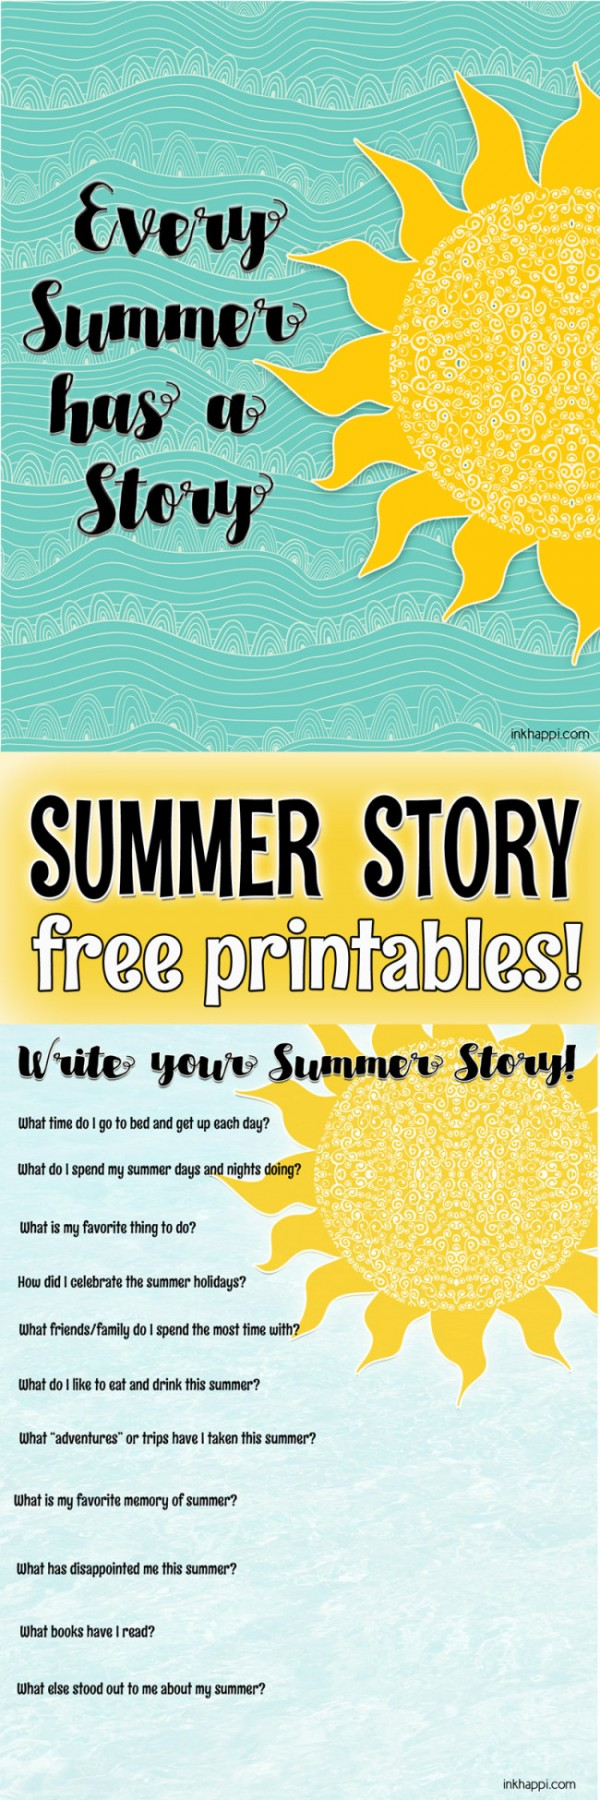 Printables for Summer | Free printables for summer by inkhappi | See more creative ideas on TodaysCreativeLife.com